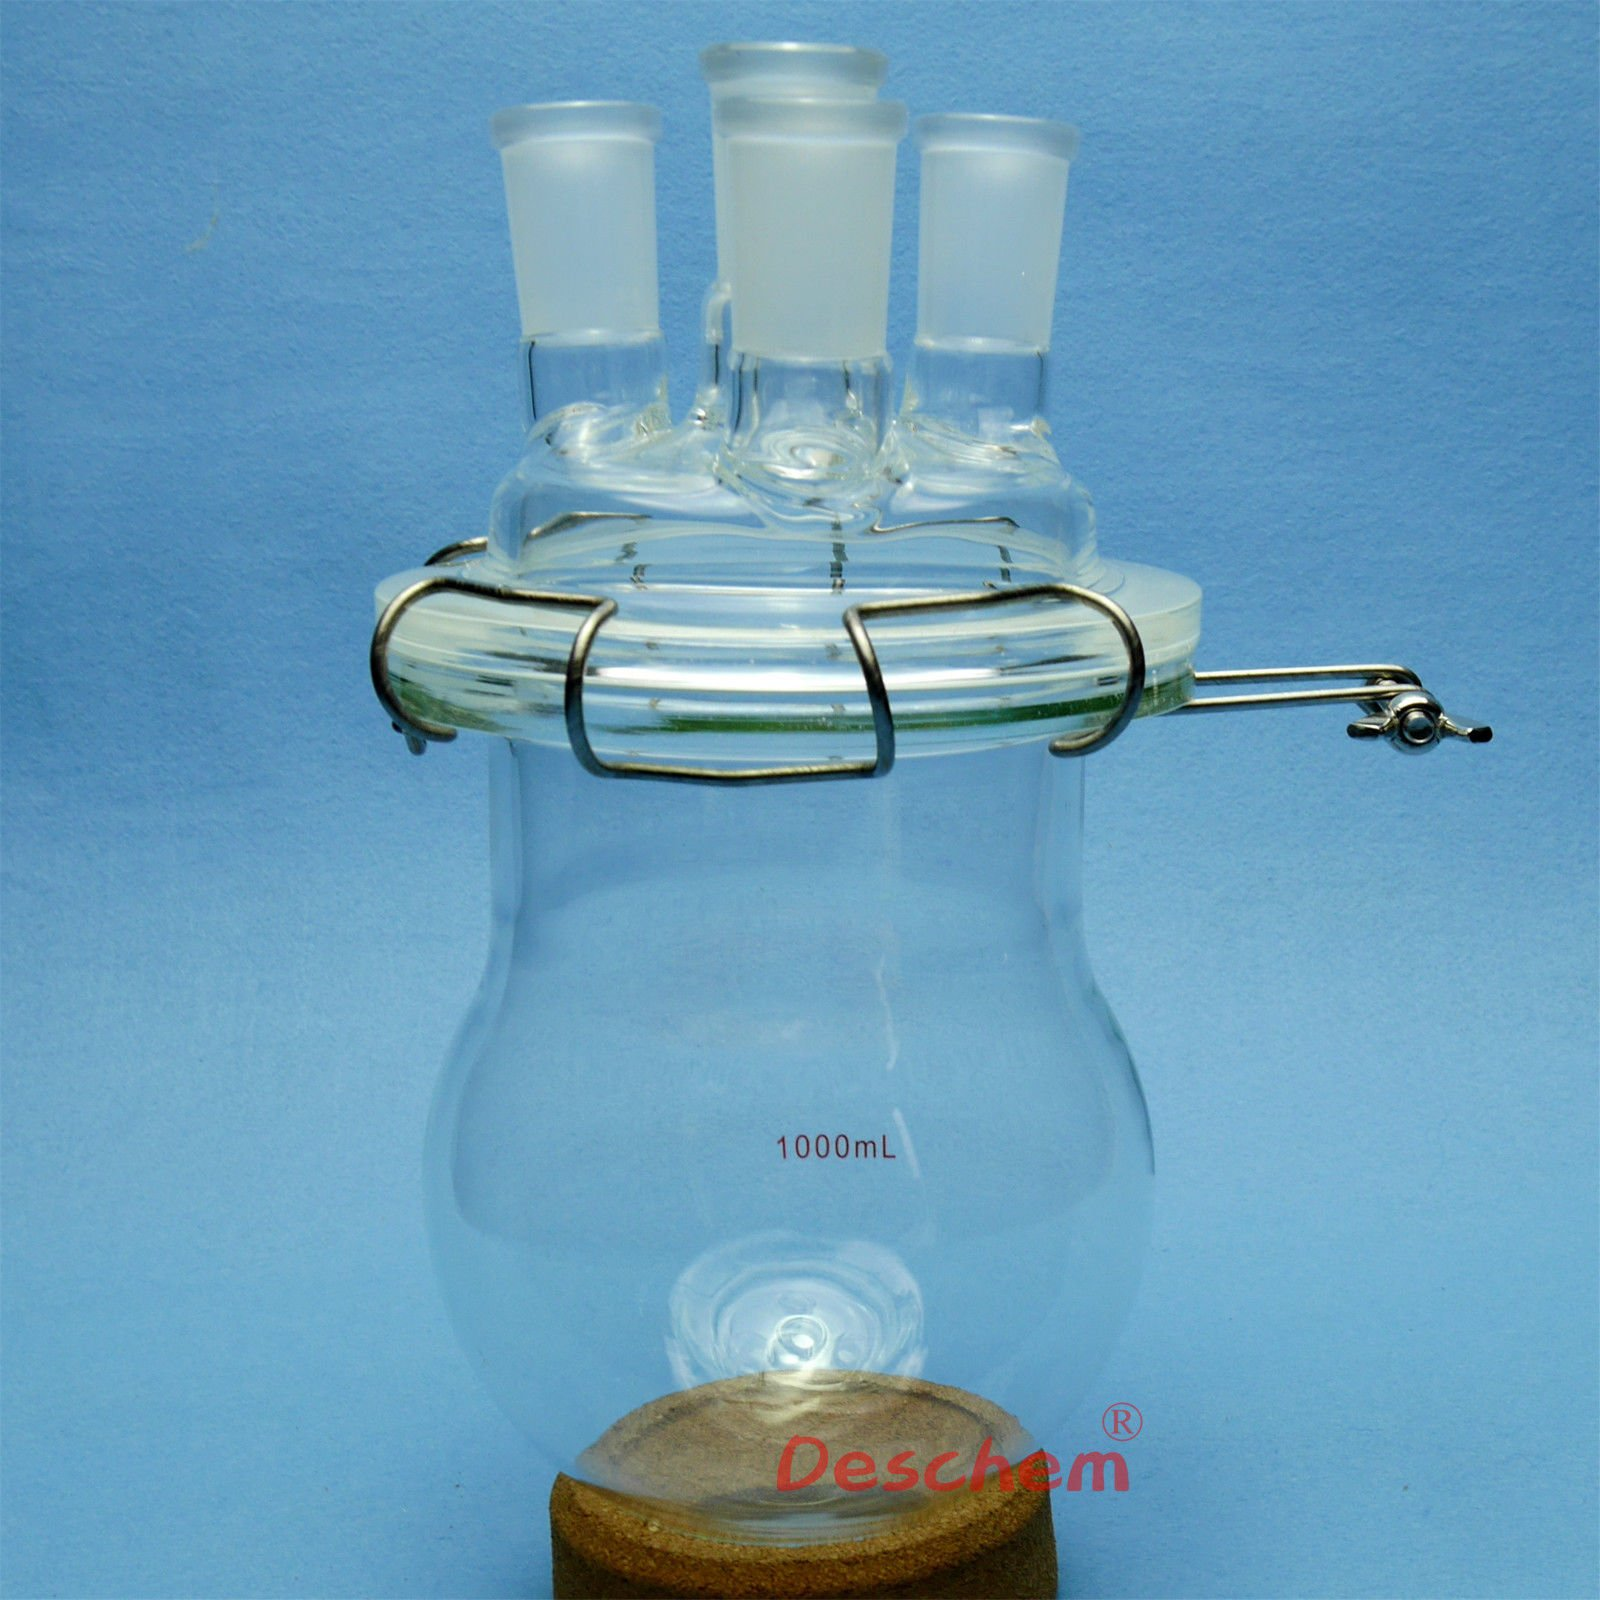 Deschem 1000ml,24/40,Glass Reaction Reactor,4-Necks,1L,Reaction Vessel W/Lid and Clamp by Deschem